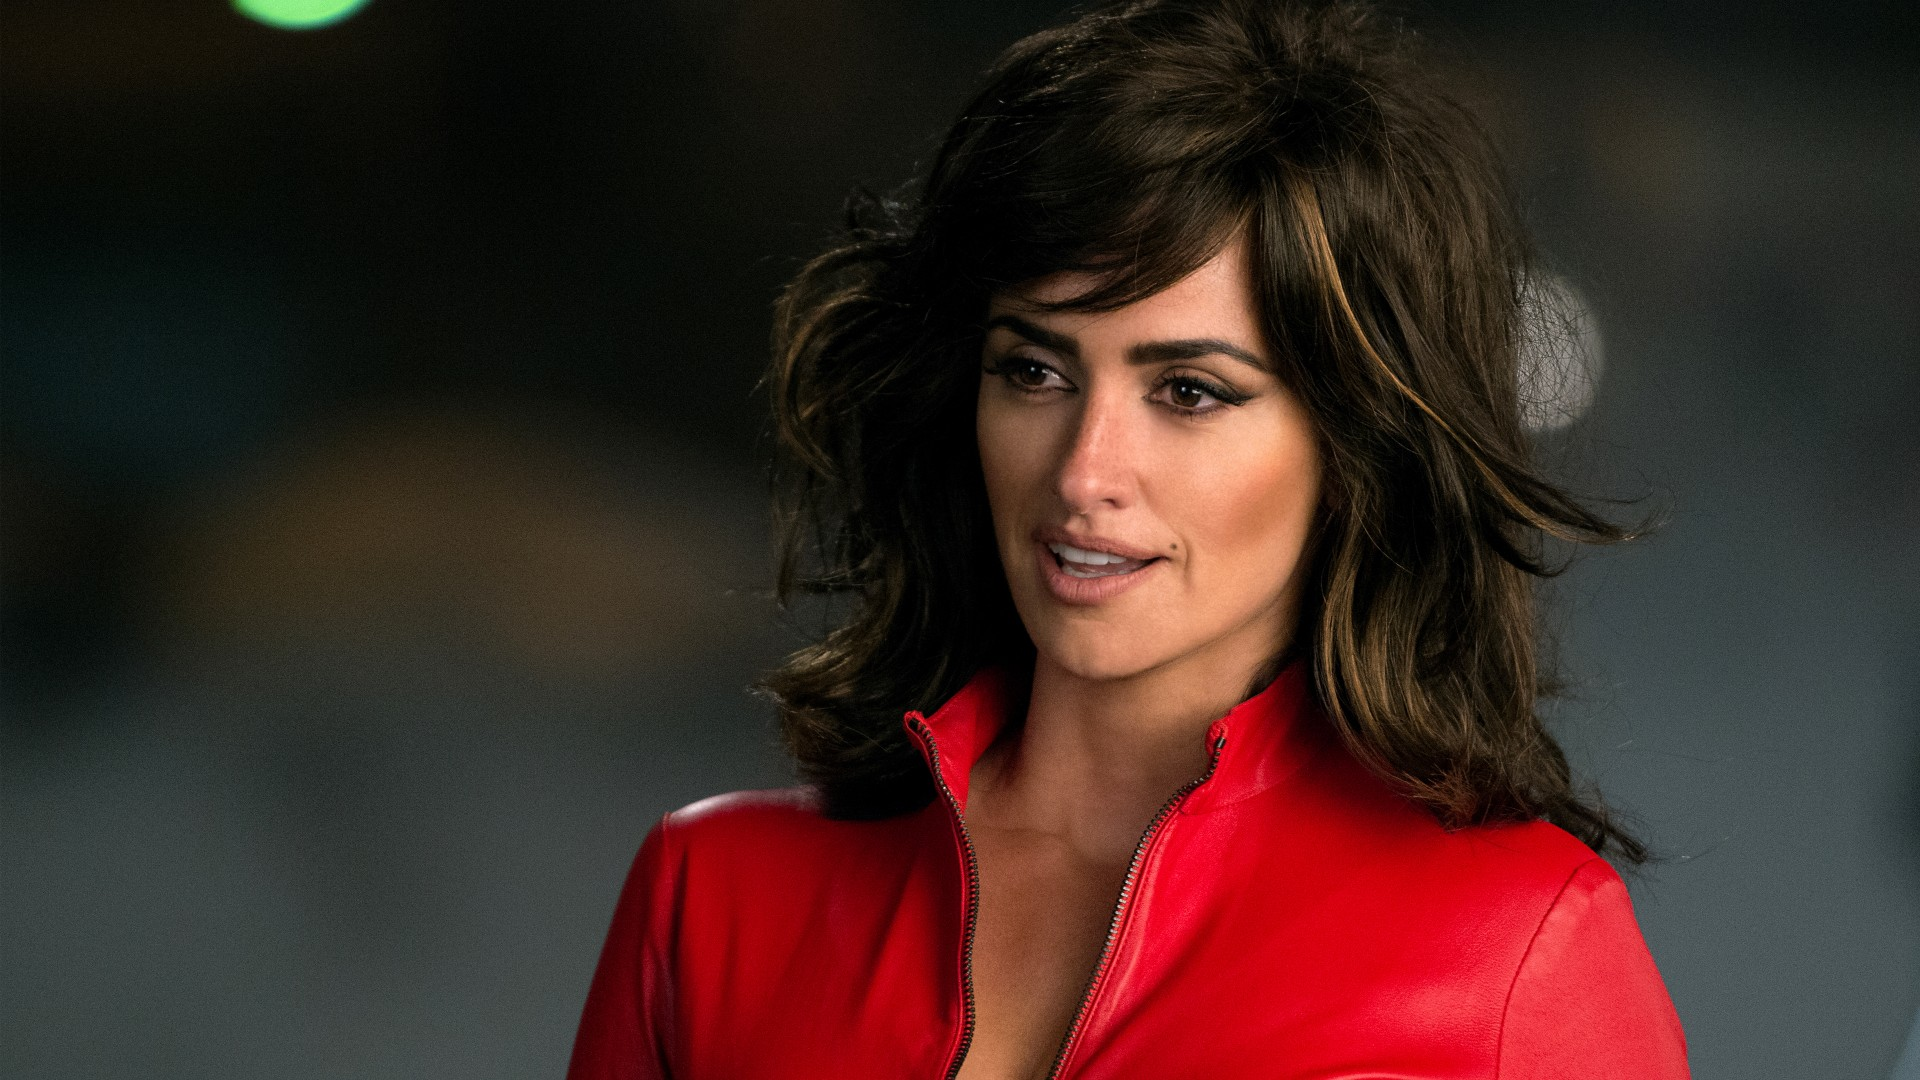 Fast And Furious Cars Wallpaper Iphone Penelope Cruz Valentina Valencia Wallpapers Hd